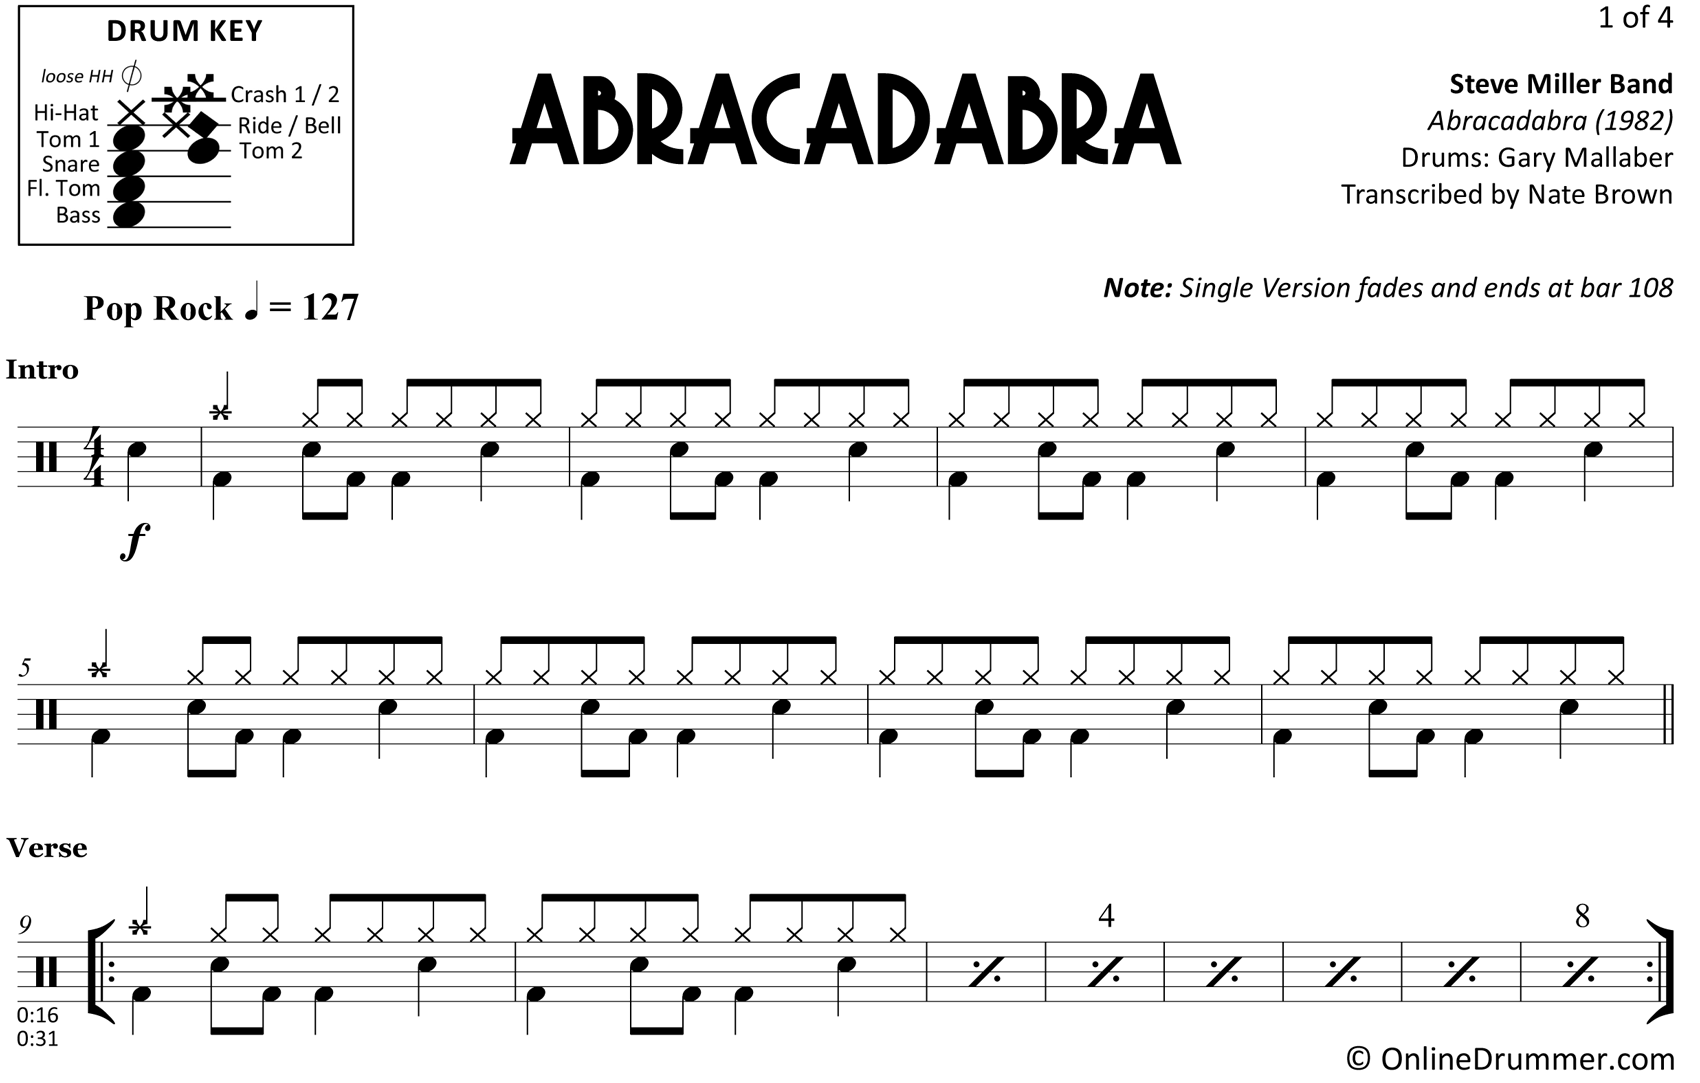 Abracadabra - Steve Miller Band - Drum Sheet Music